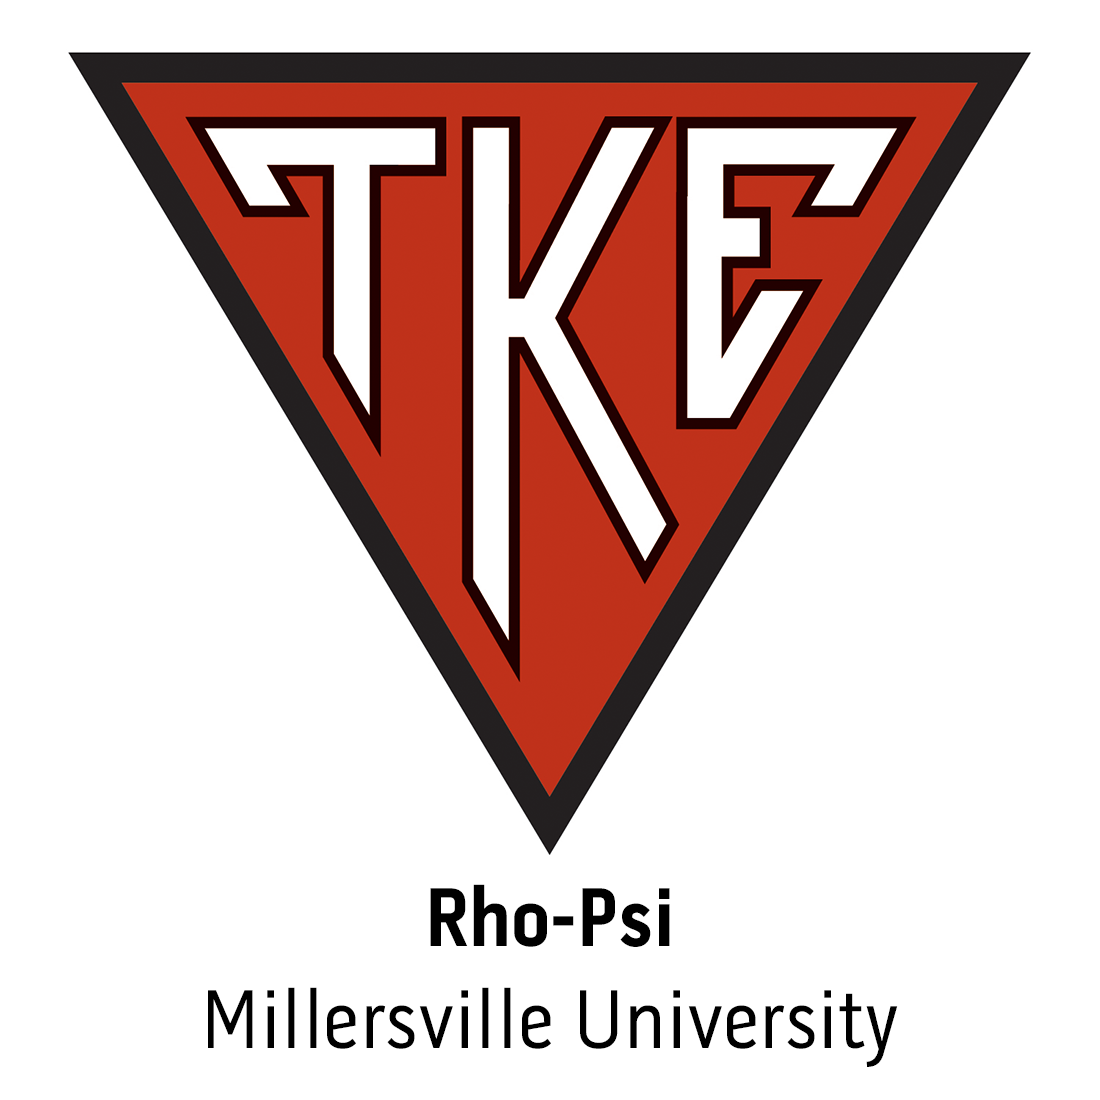 Rho-Psi Chapter at Millersville University